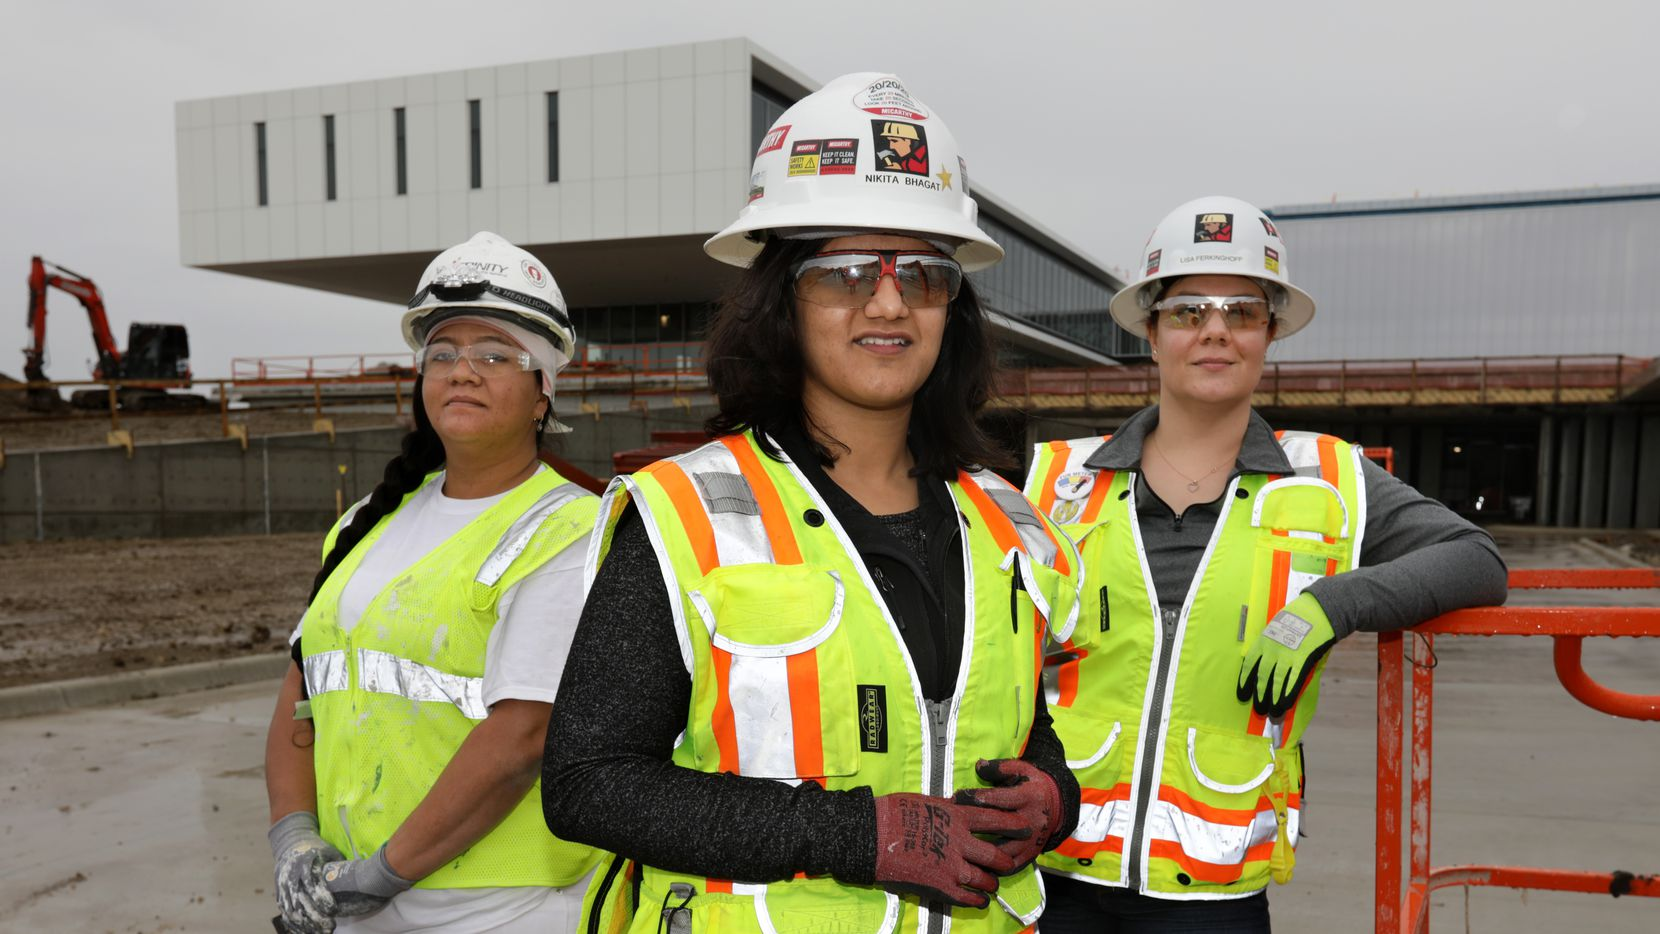 Karen Antunez, left, Nikita Bhagat, and Lisa Ferkinghoff are among the many women joining the construction industry. All three are working on the Collin College Technical Campus construction site in Allen.